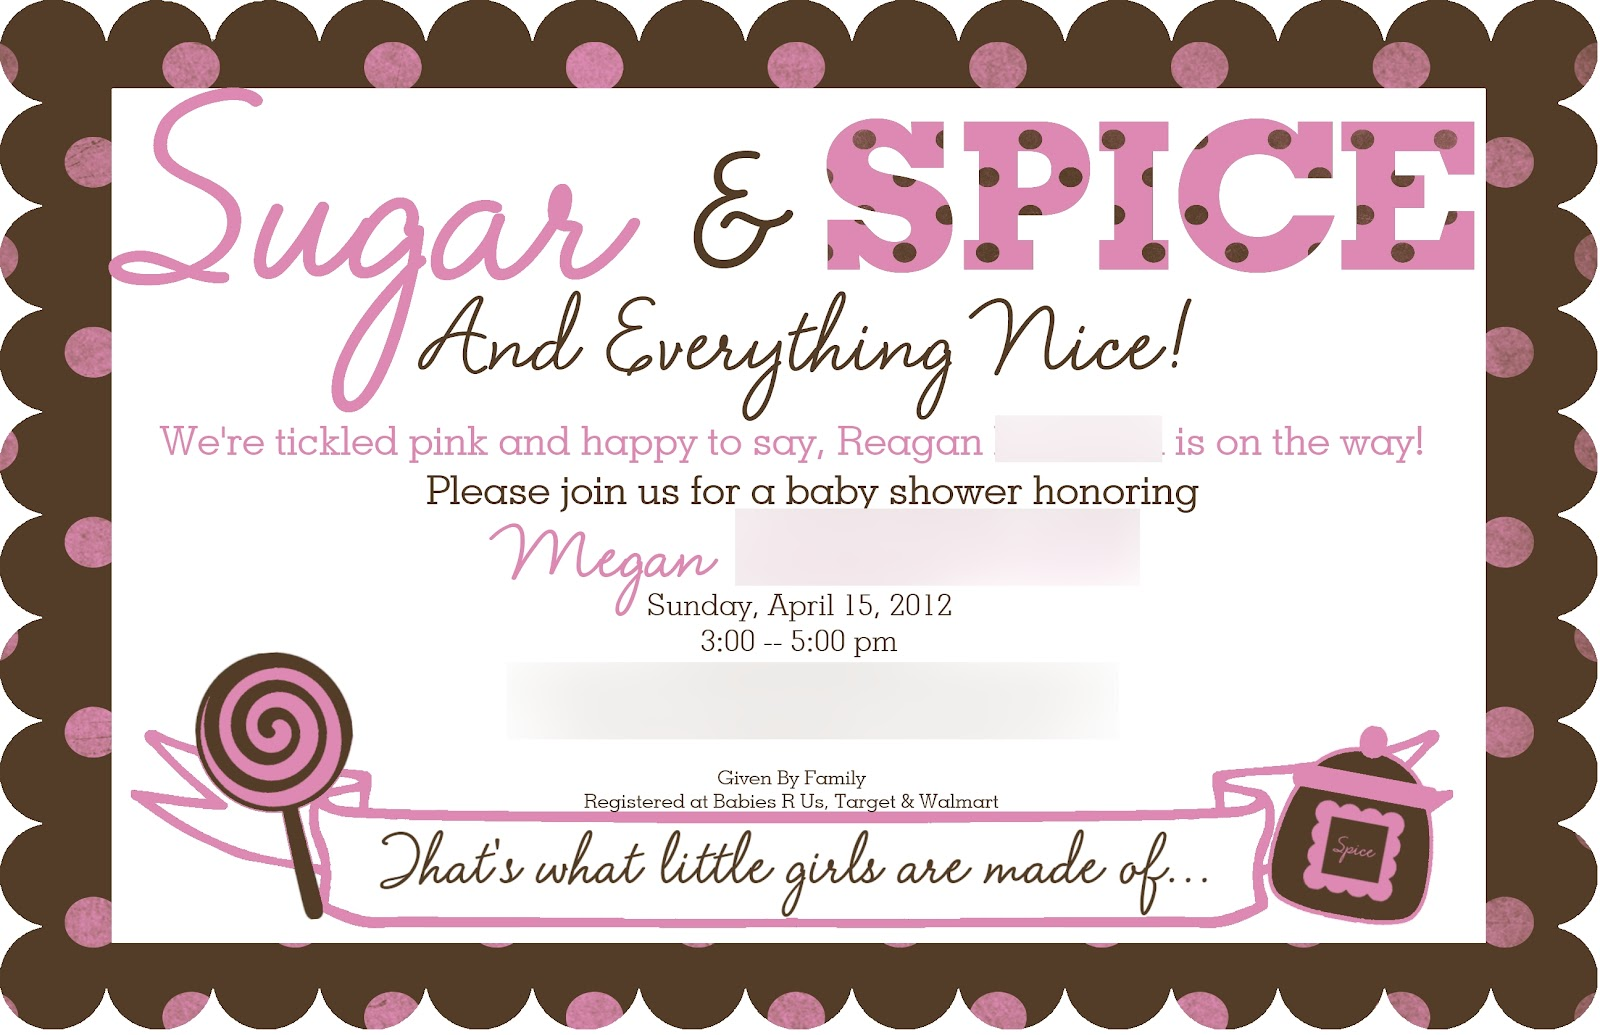 Baby shower diaper party invitation wording mickey mouse baby shower diaper party invitation wording filmwisefo Images